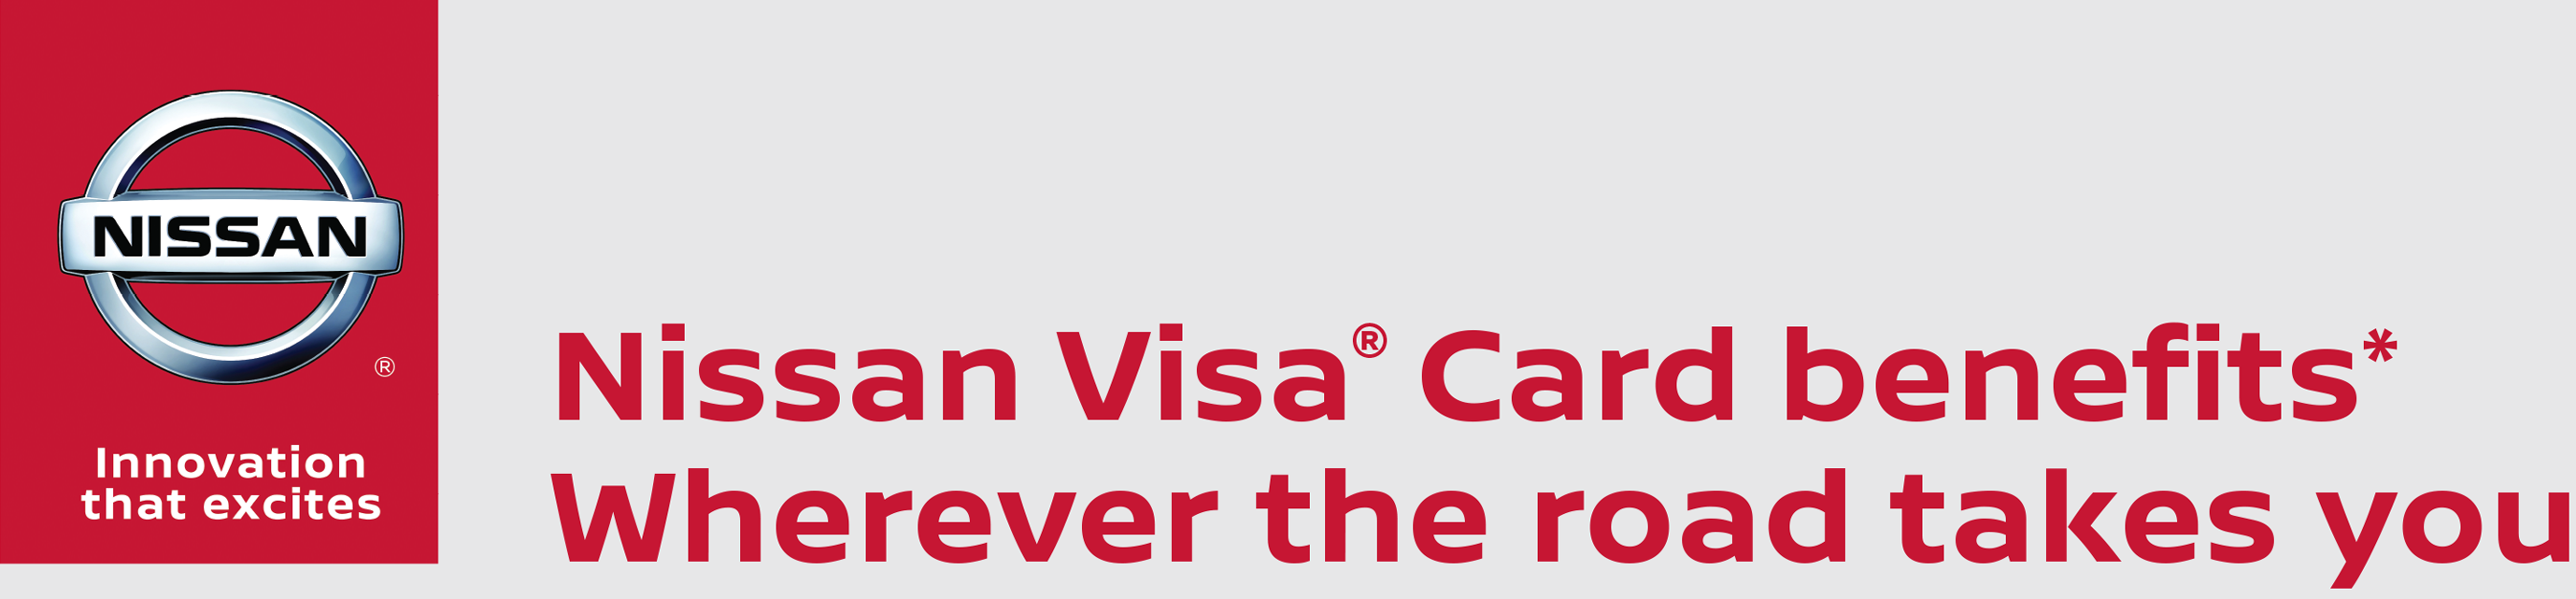 NISSAN® Innovation that excites | Nissan® Visa® Card benefits* | Wherever the road takes you